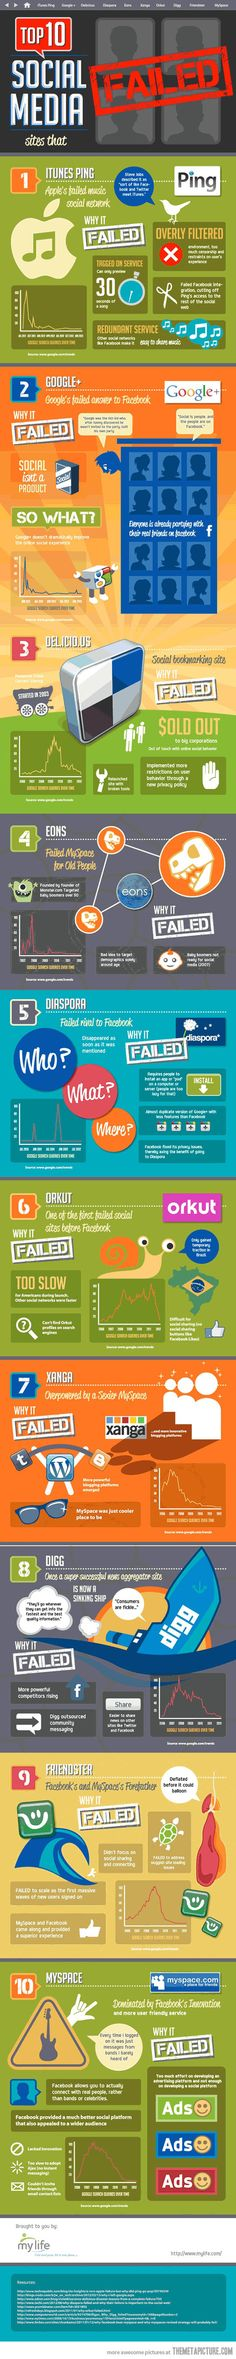 10 Social Media Sites that failed.  Infographic.